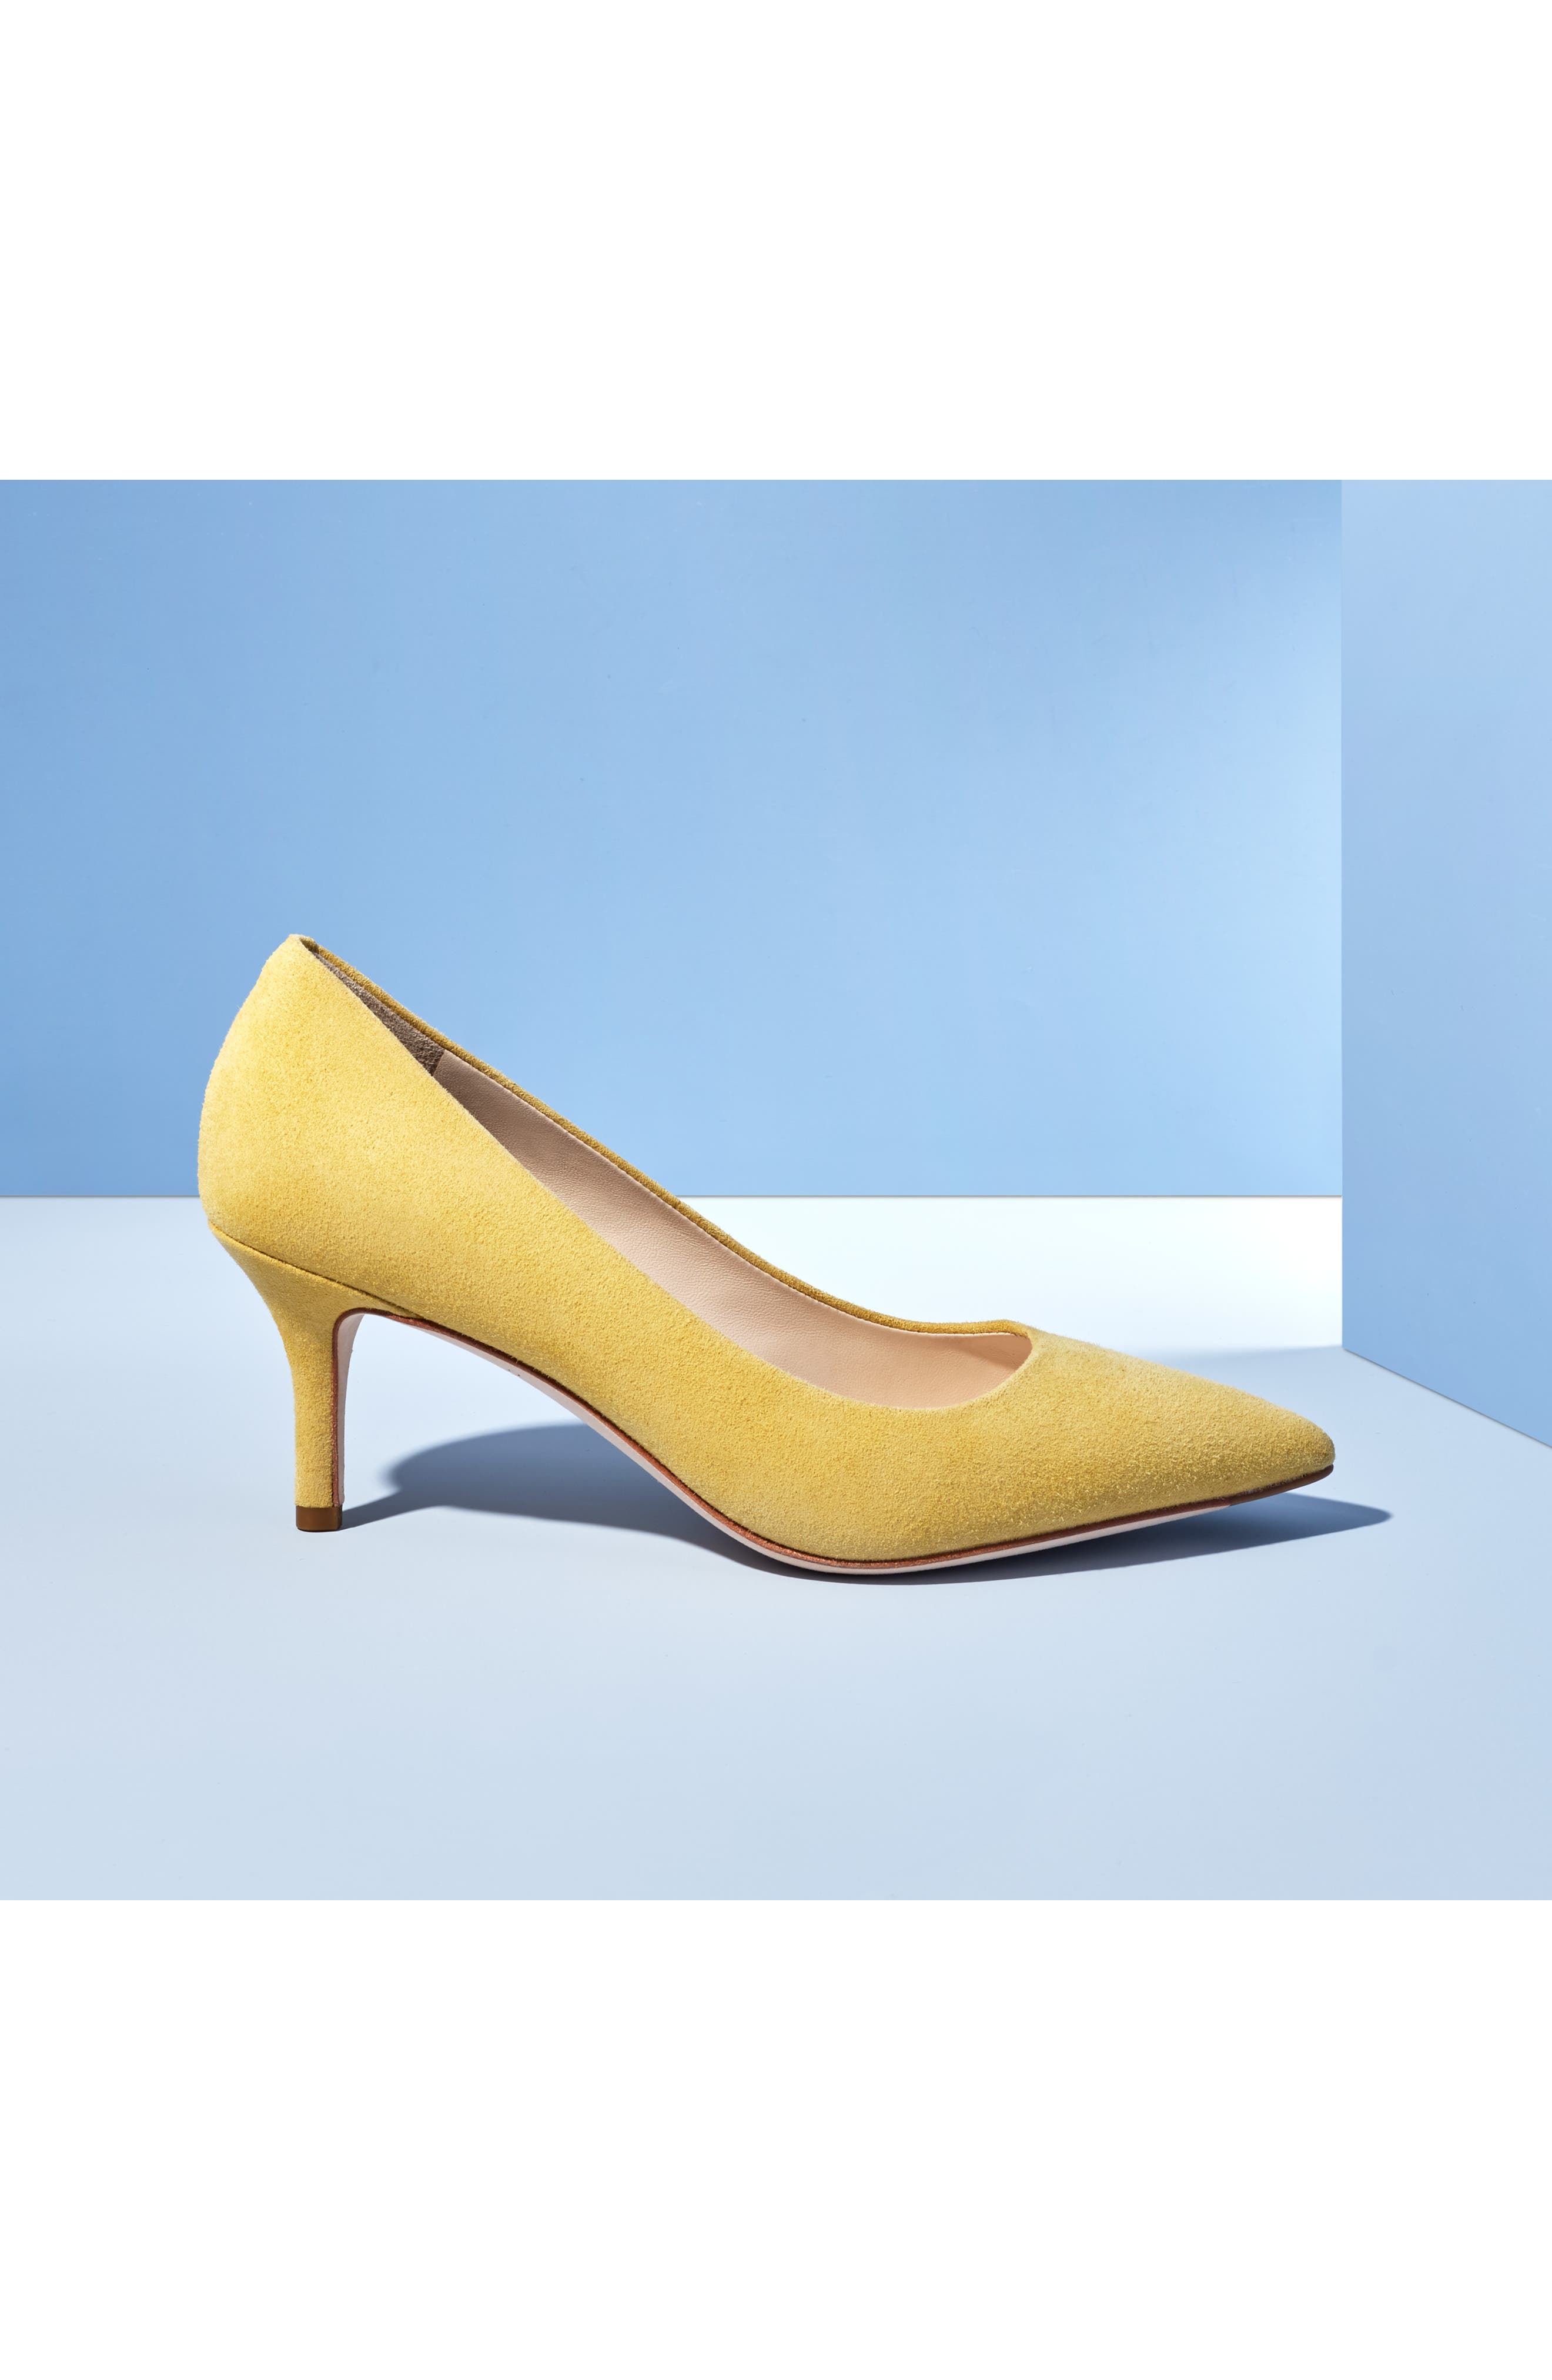 COLE HAAN, Vesta Pointy Toe Pump, Alternate thumbnail 8, color, SUNSET GOLD SUEDE